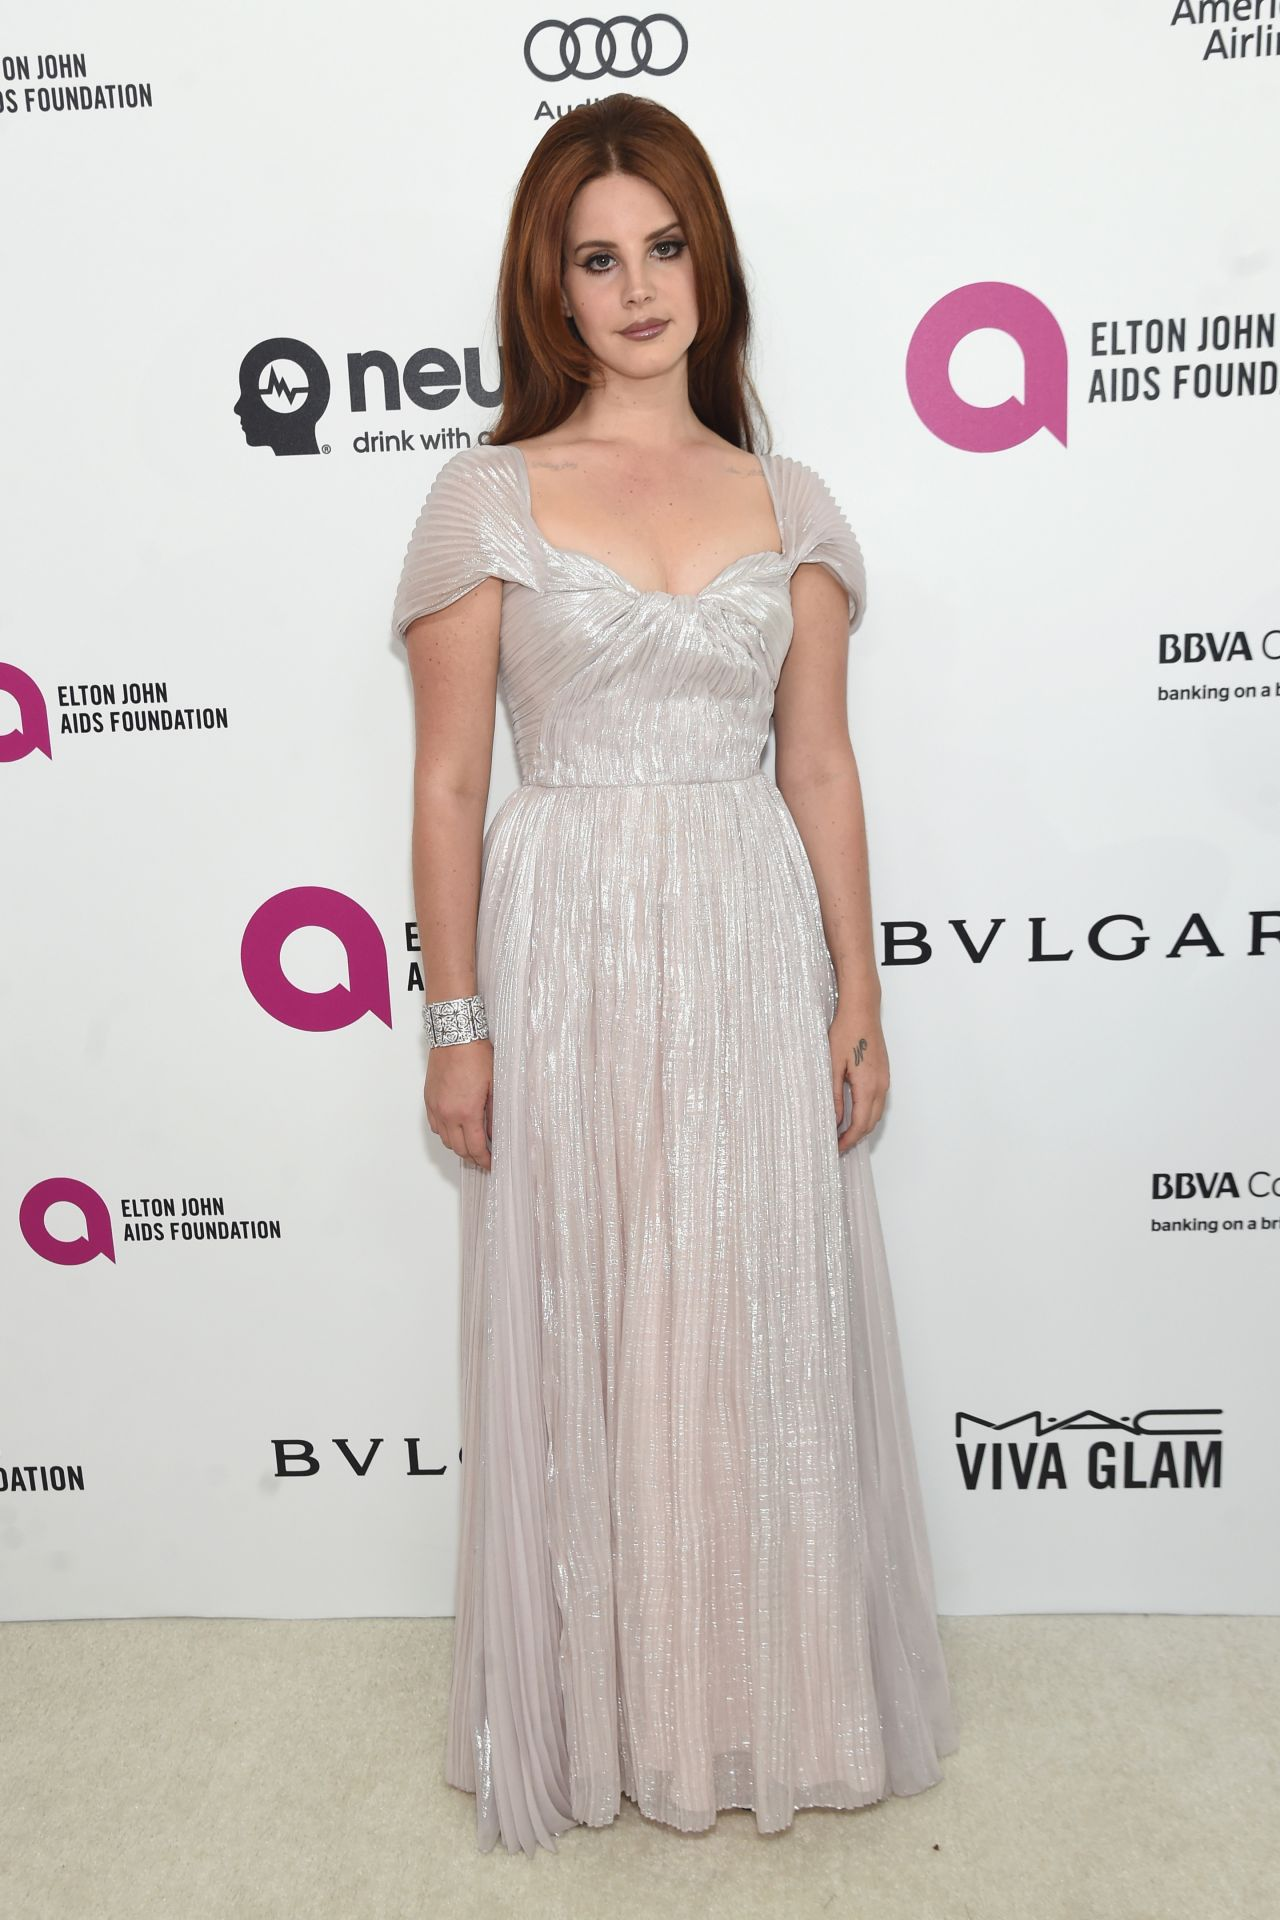 lana-del-ray-2016-elton-john-aids-foundation-s-oscar-viewing-party-in-west-hollywood-ca-6